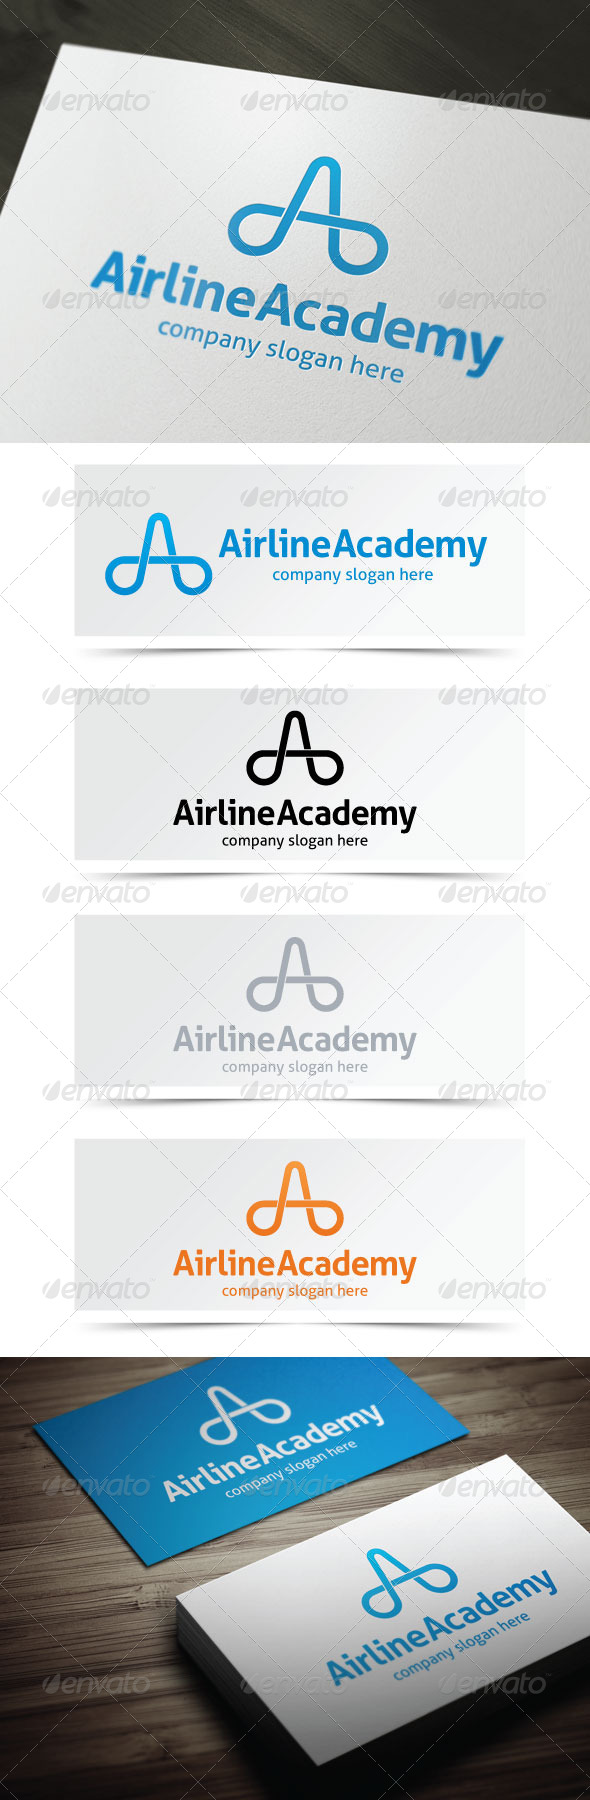 GraphicRiver Airline Academy 5080867